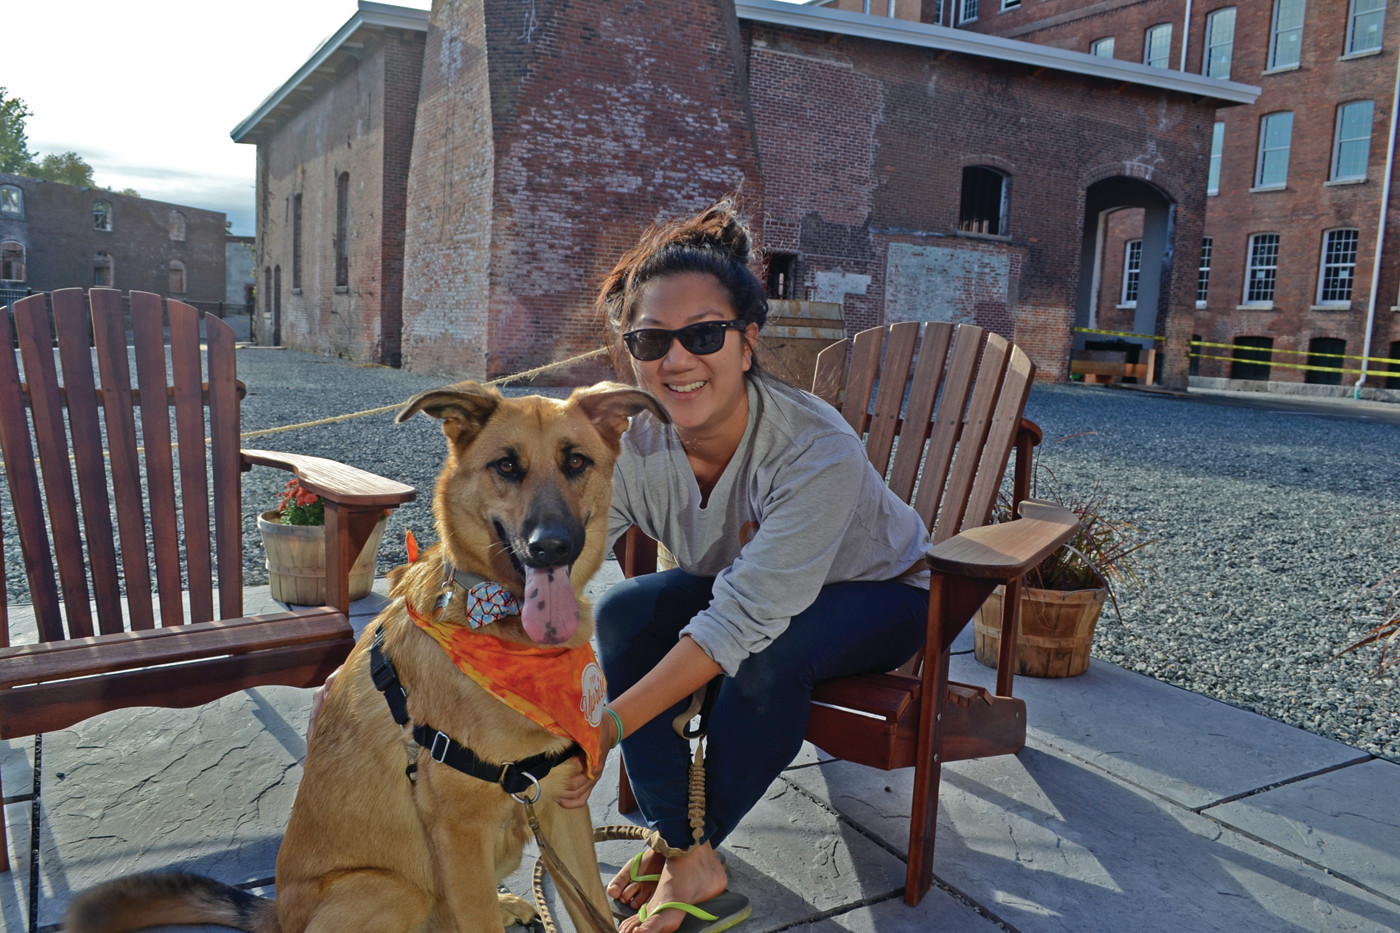 DOG FRIENDLY: The brewery is happy to accommodate pups, like German shepherd mix Jersey, seen here smiling with dog mom Kristina McDonald, in their outdoor patio area.